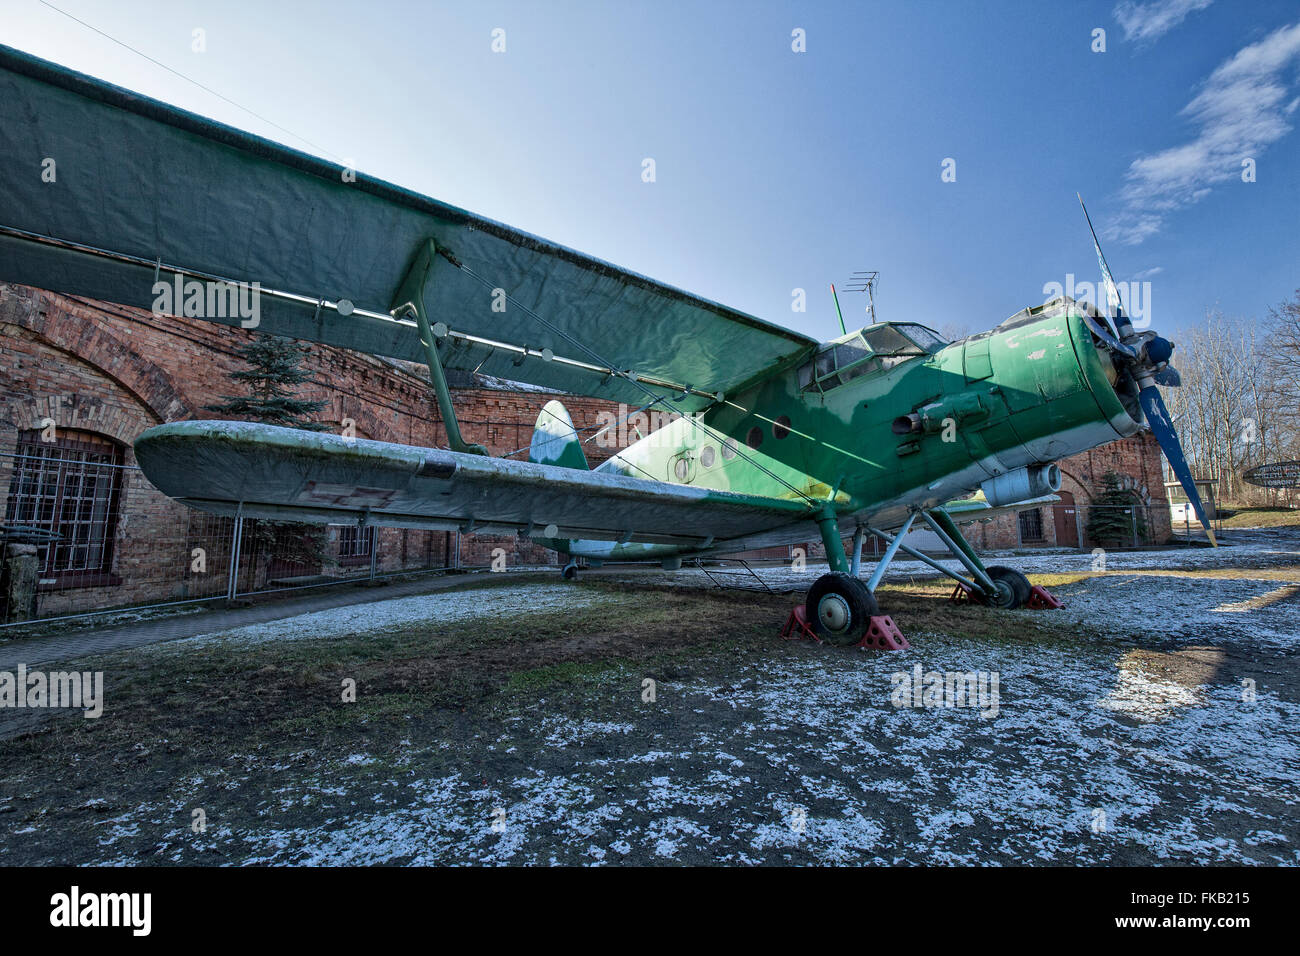 Polish Air Force Antonov An-2 Colt standing in the Museum of Polish Military Technology, Warsaw, Poland. - Stock Image